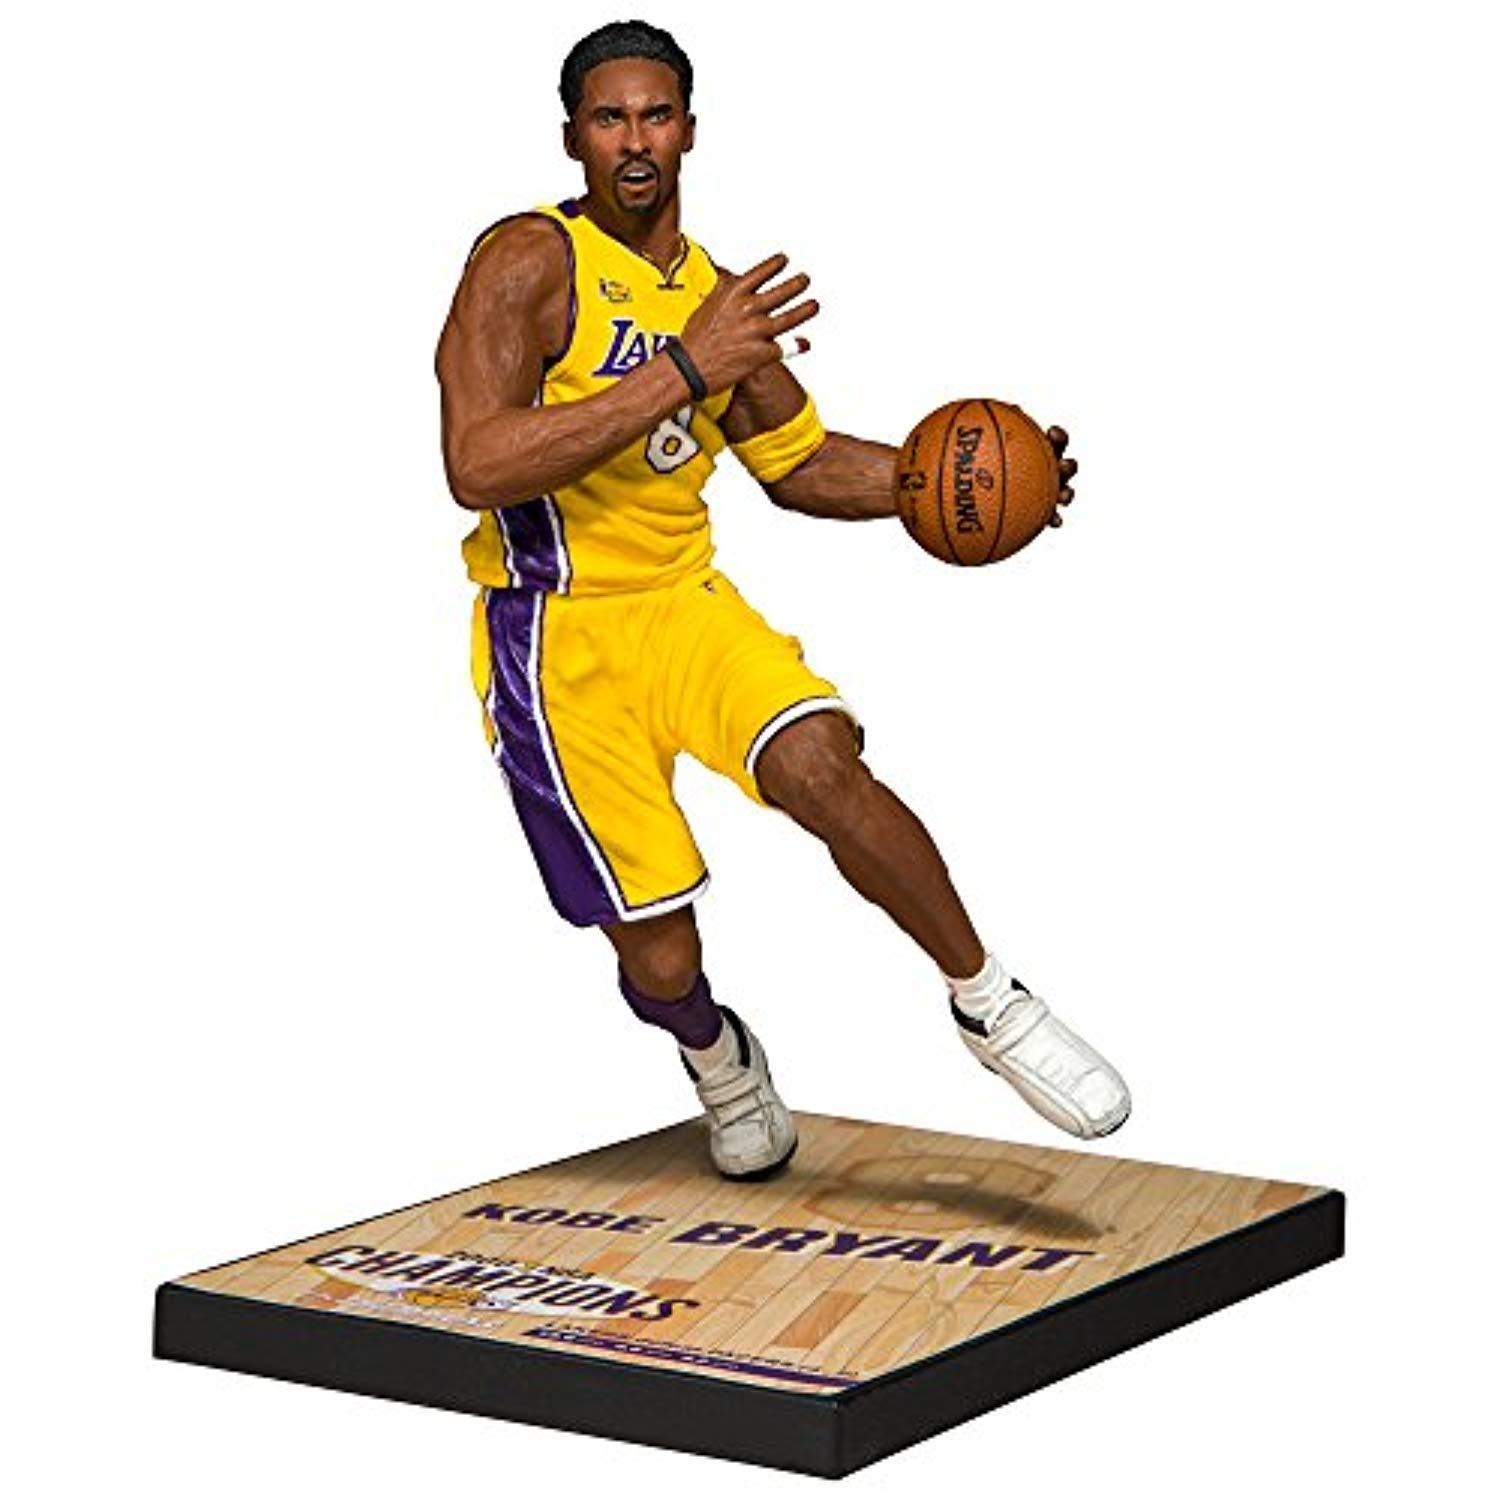 McFarlane Toys Kobe Bryant 2000 Nba Finals Action Figure